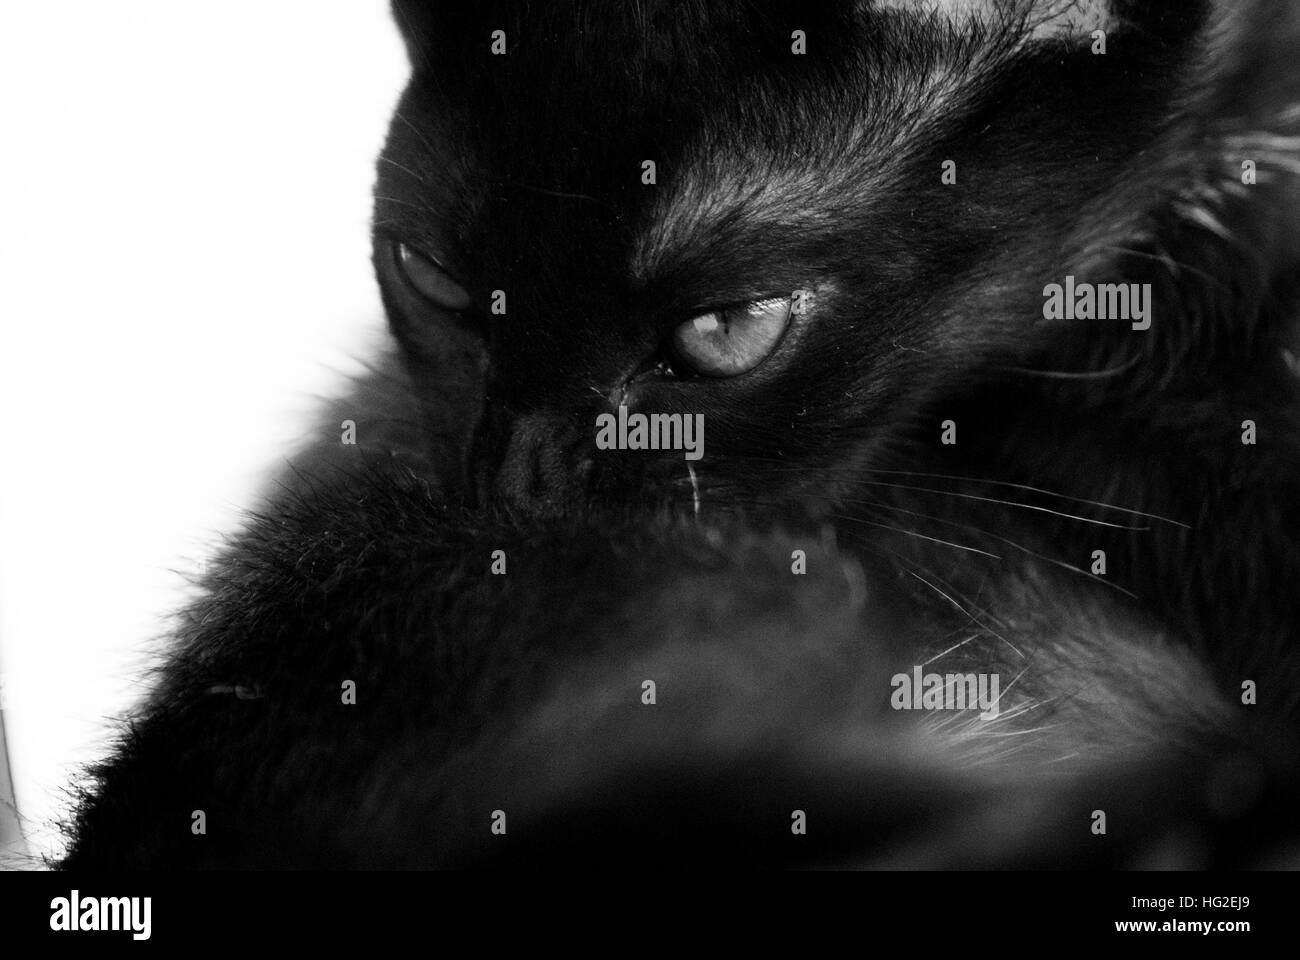 The Mysterious cat! - Stock Image